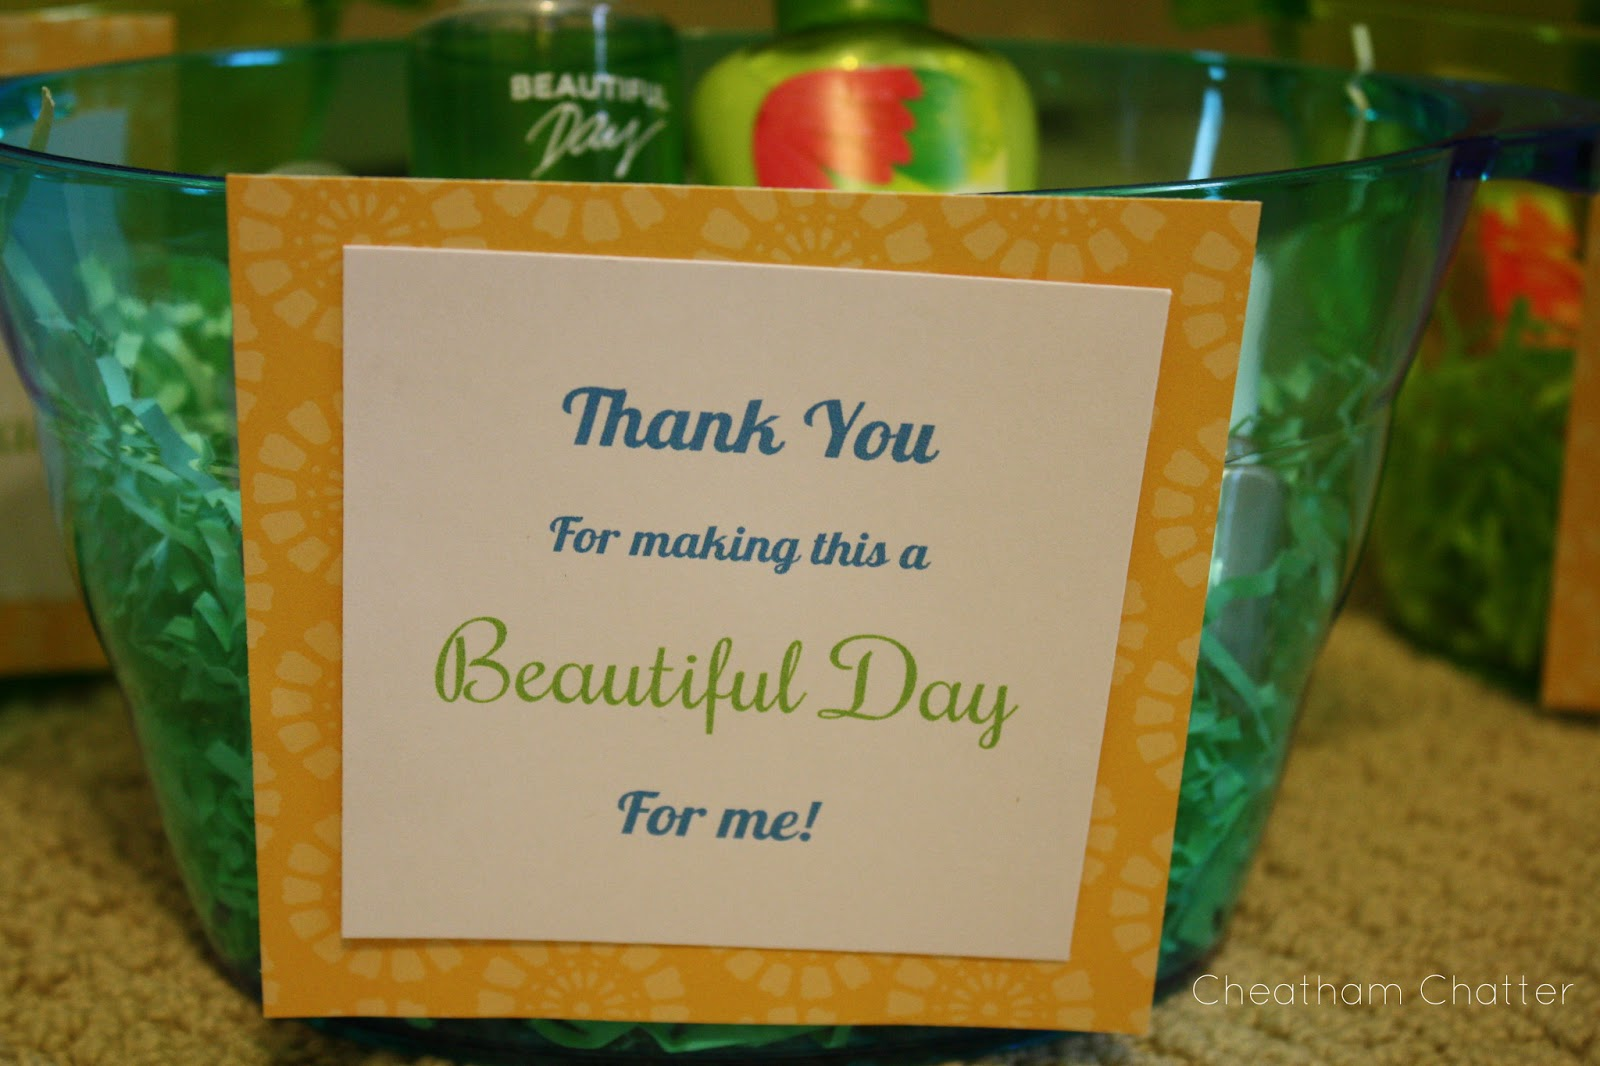 Scrapbook paper dollar general - I Got The Clear Plastic Containers From The Dollar General Of Course